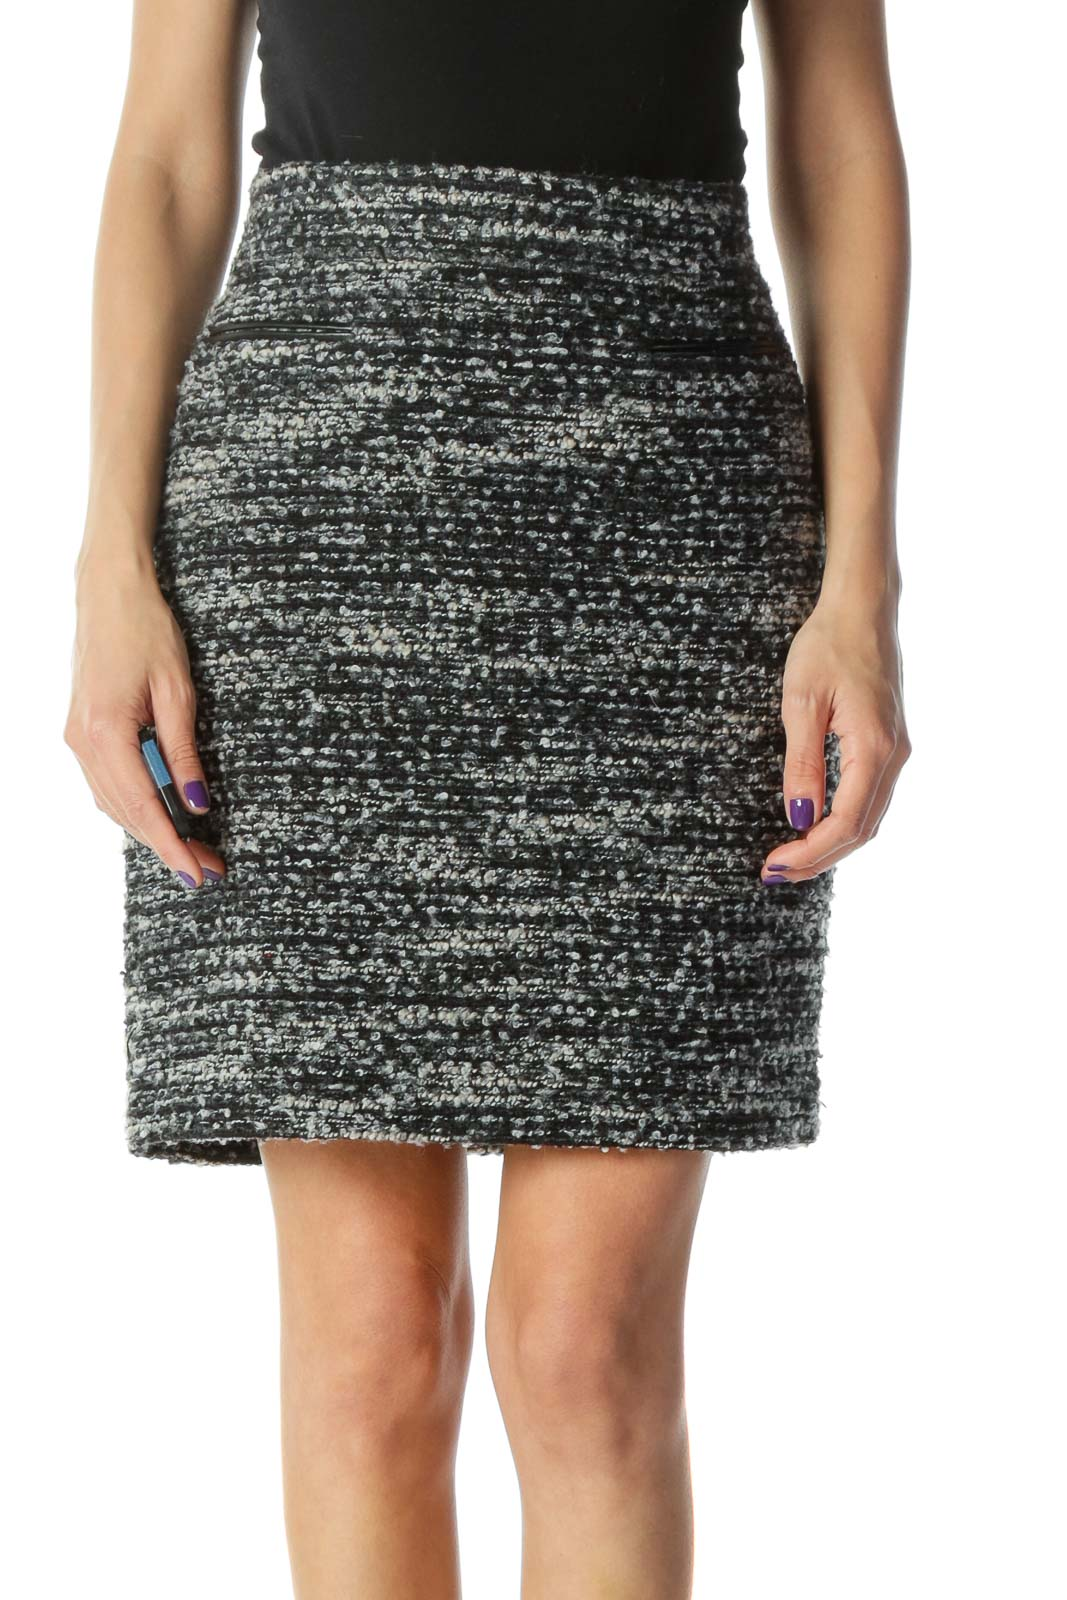 Black and Grey Knit Pencil Skirt